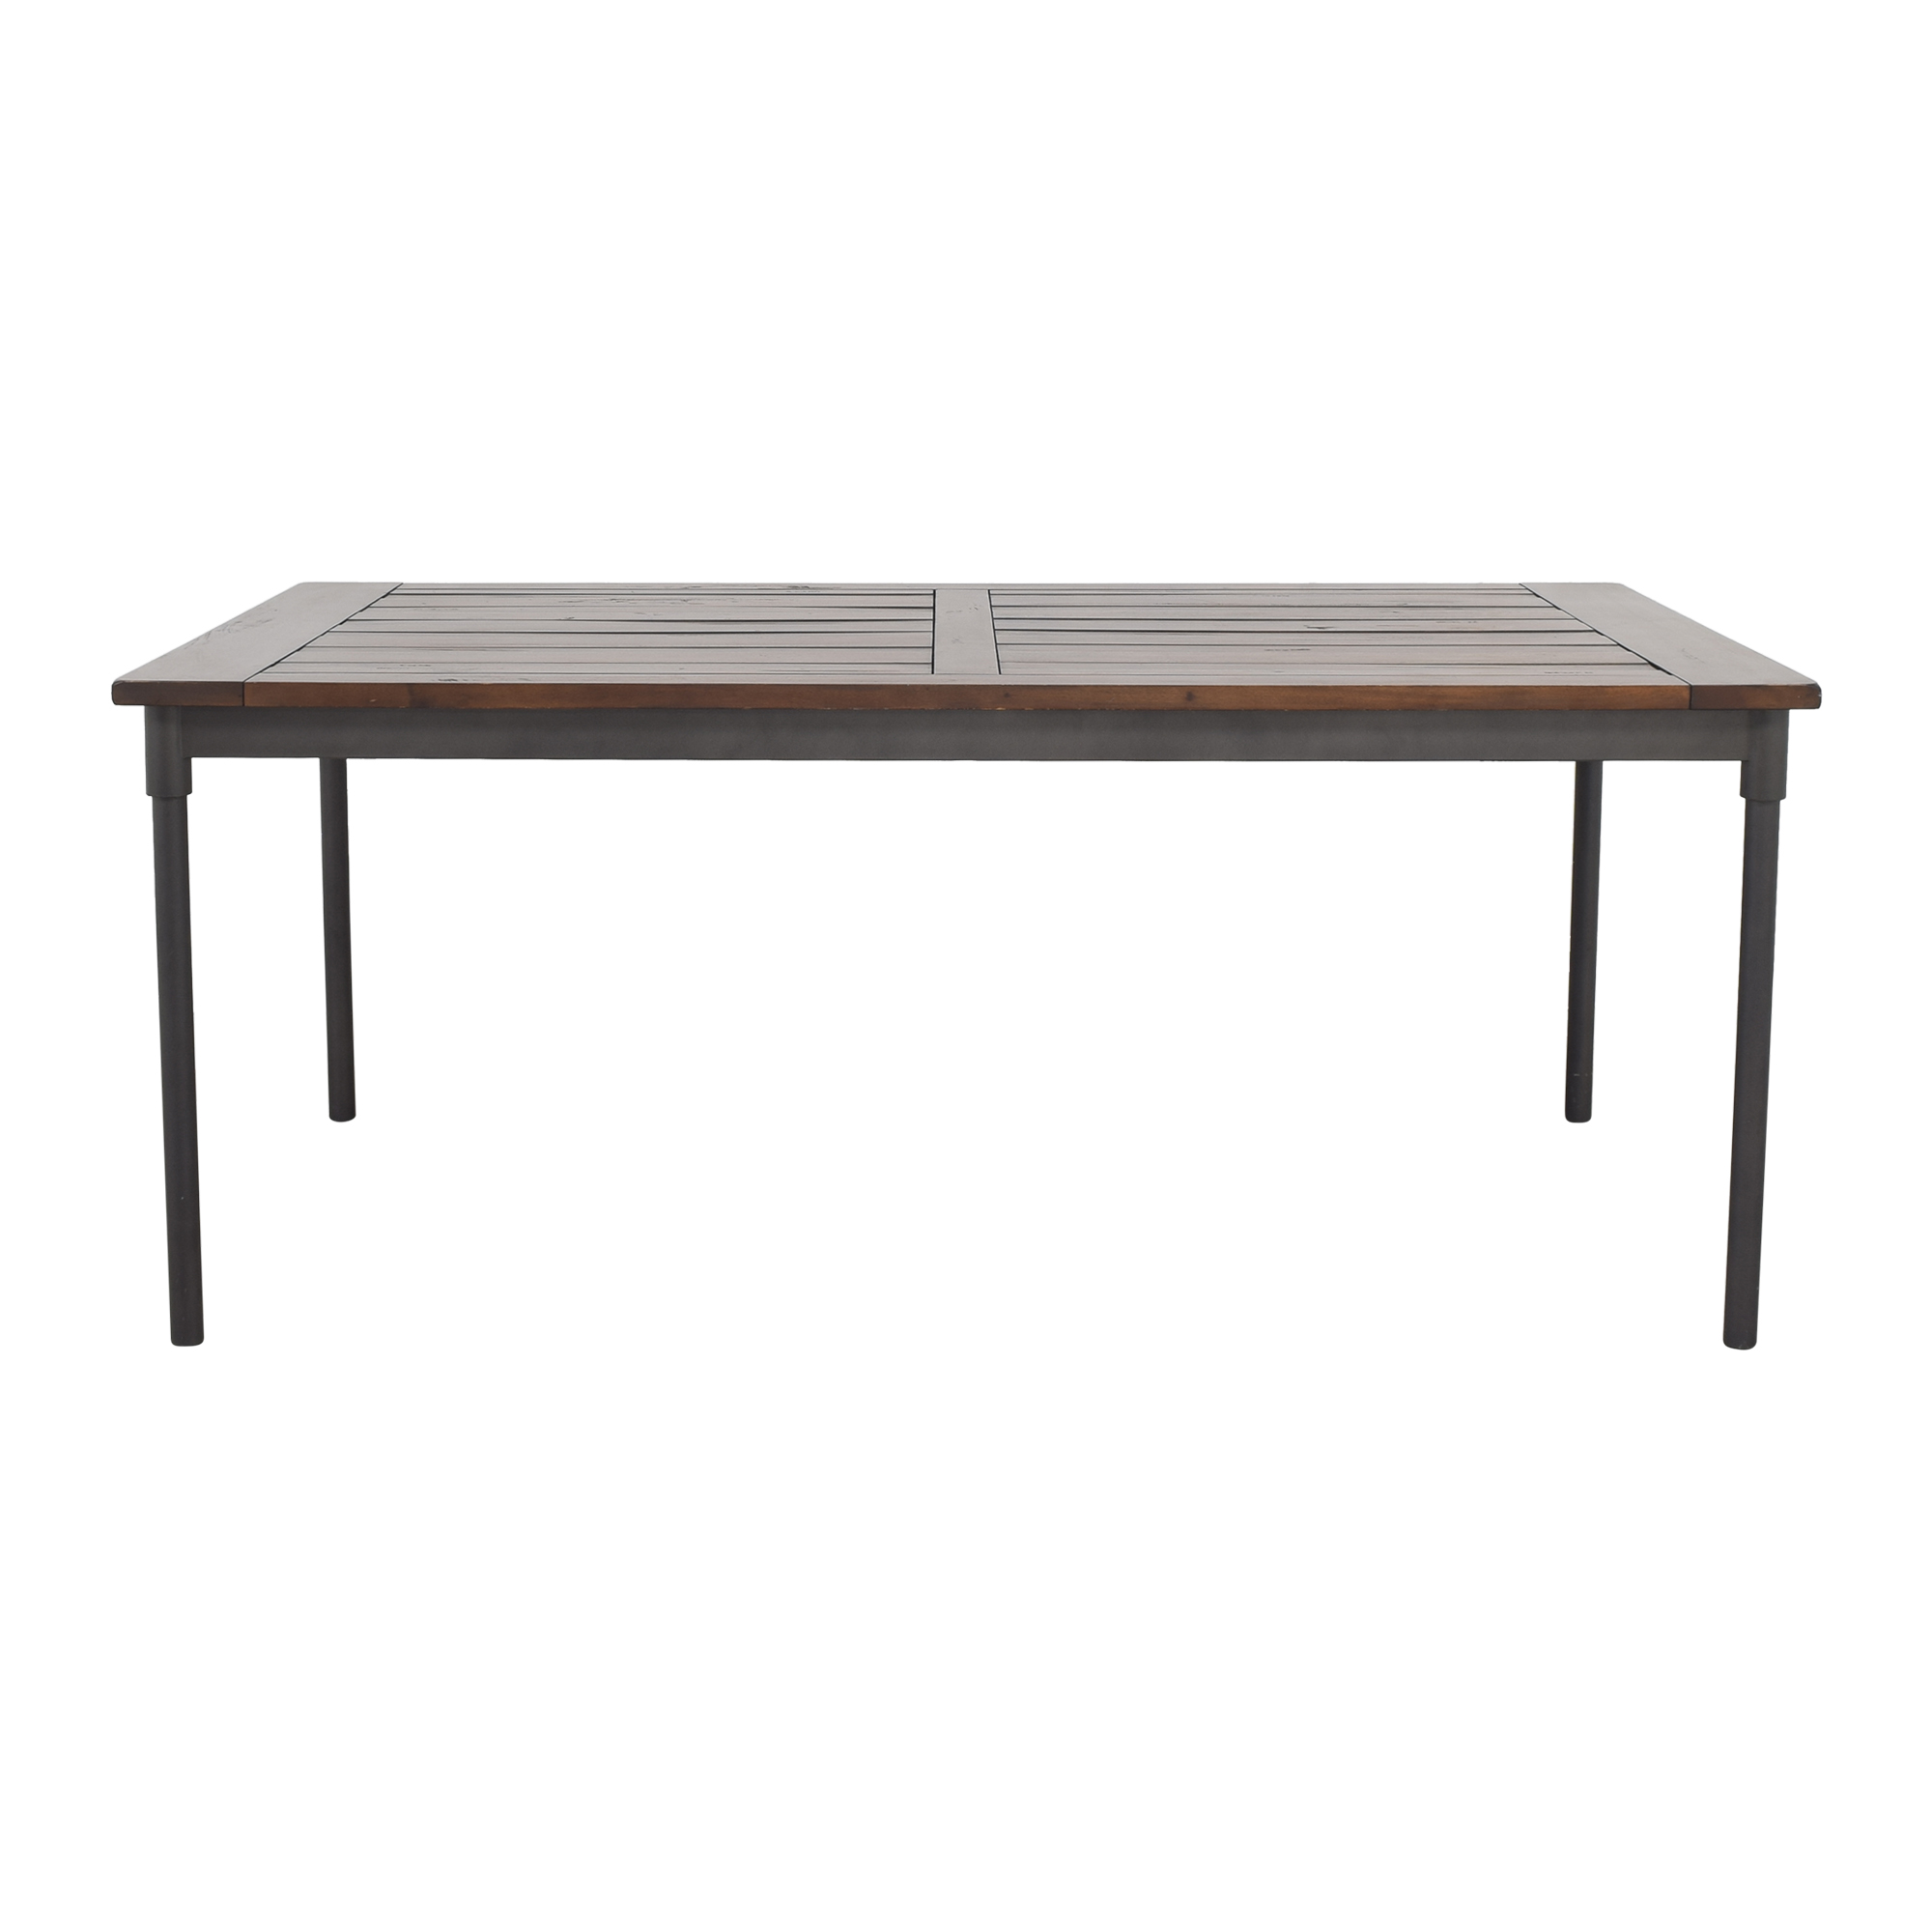 West Elm West Elm Rectangular Dining Table discount